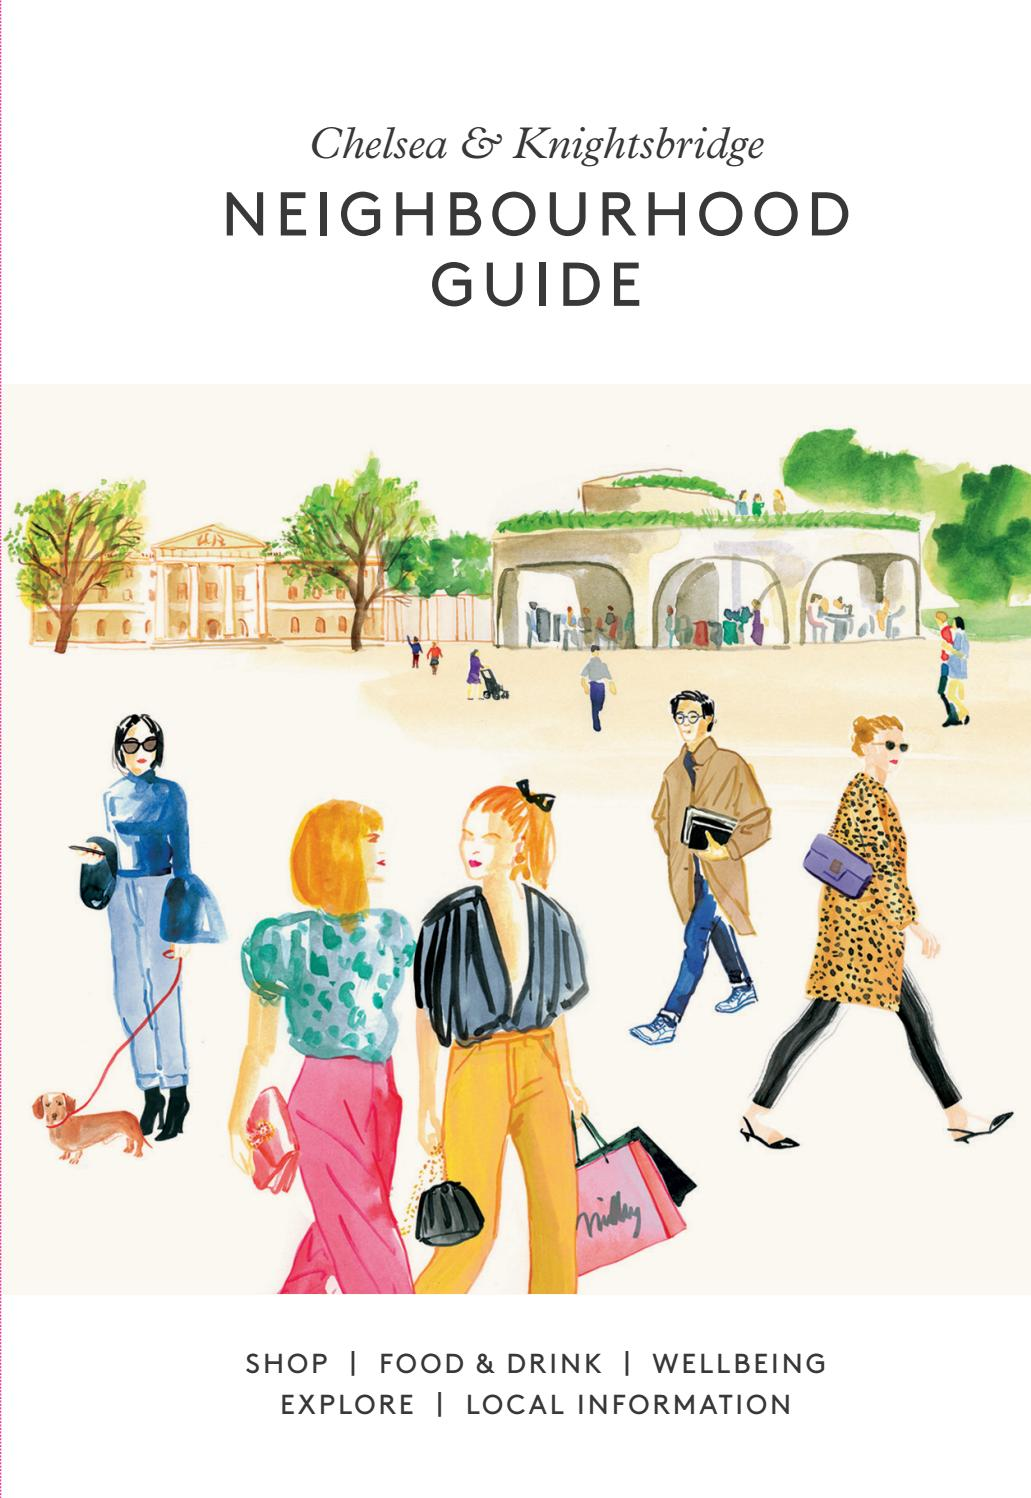 Chelsea & Knightsbridge Neighbourhood Guide by CadoganLondon